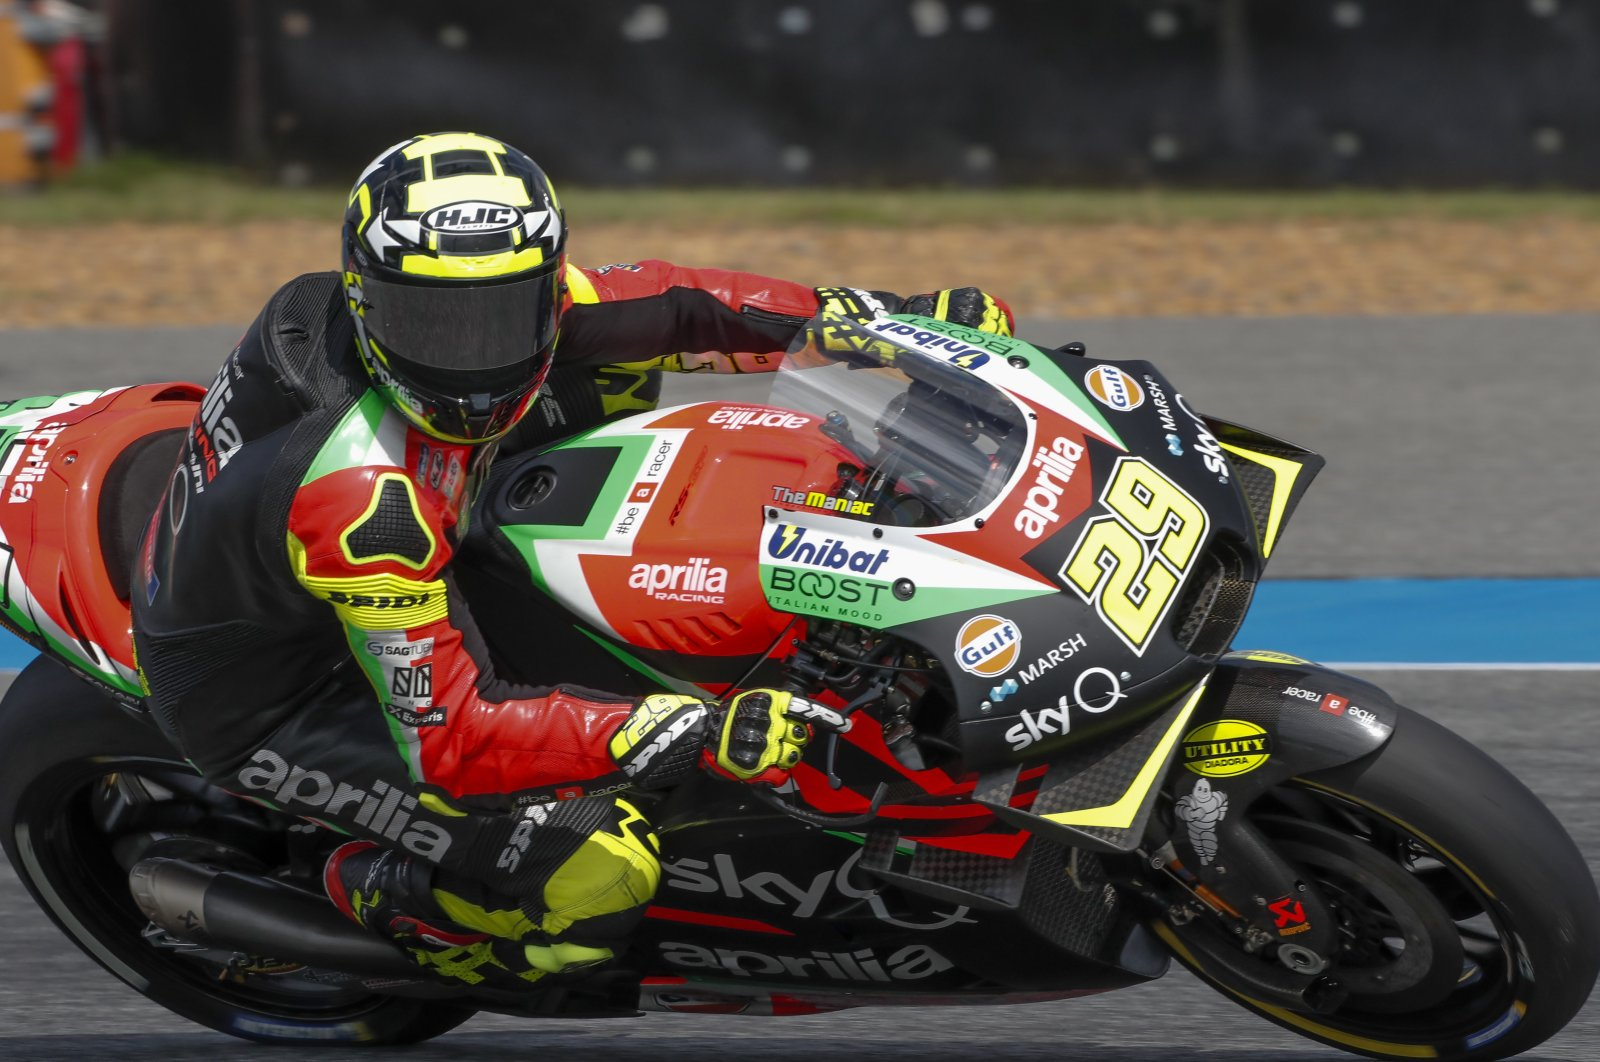 Andrea Iannone in action during Thailand MotoGP race, in Buriram, Thailand, Oct. 5, 2019. (AP Photo)